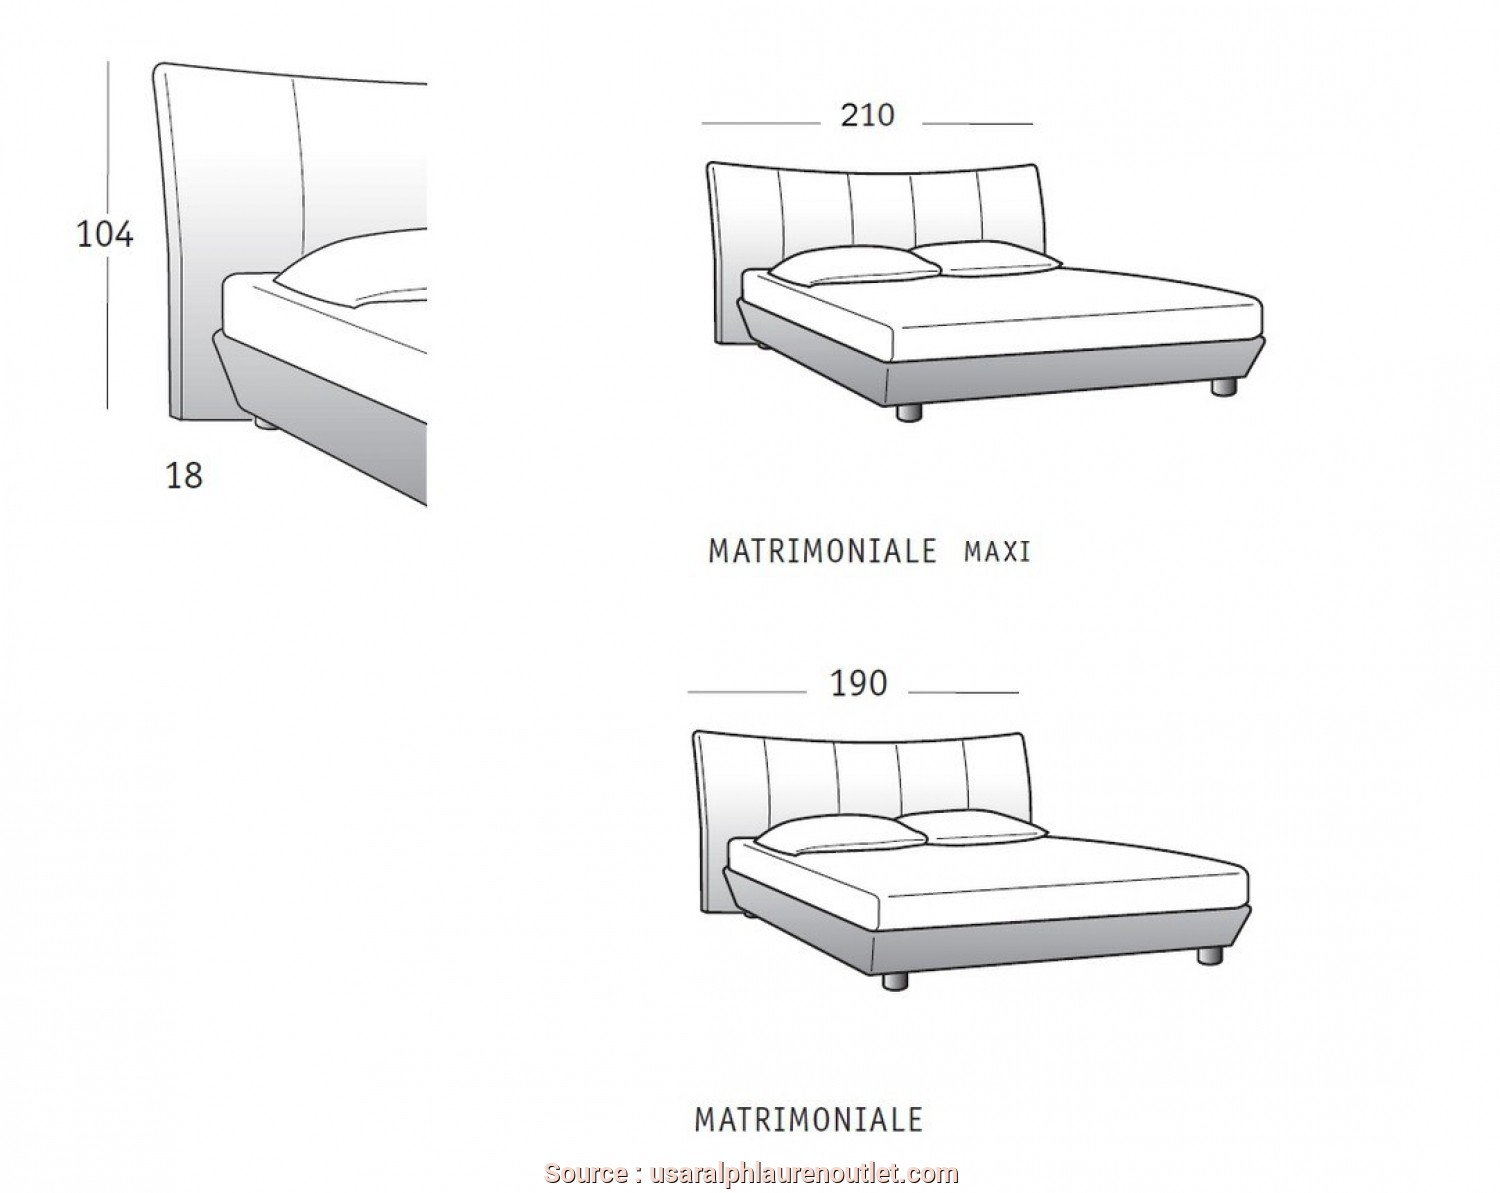 Loveable 4 divani letto in dwg jake vintage - Letto singolo dwg ...